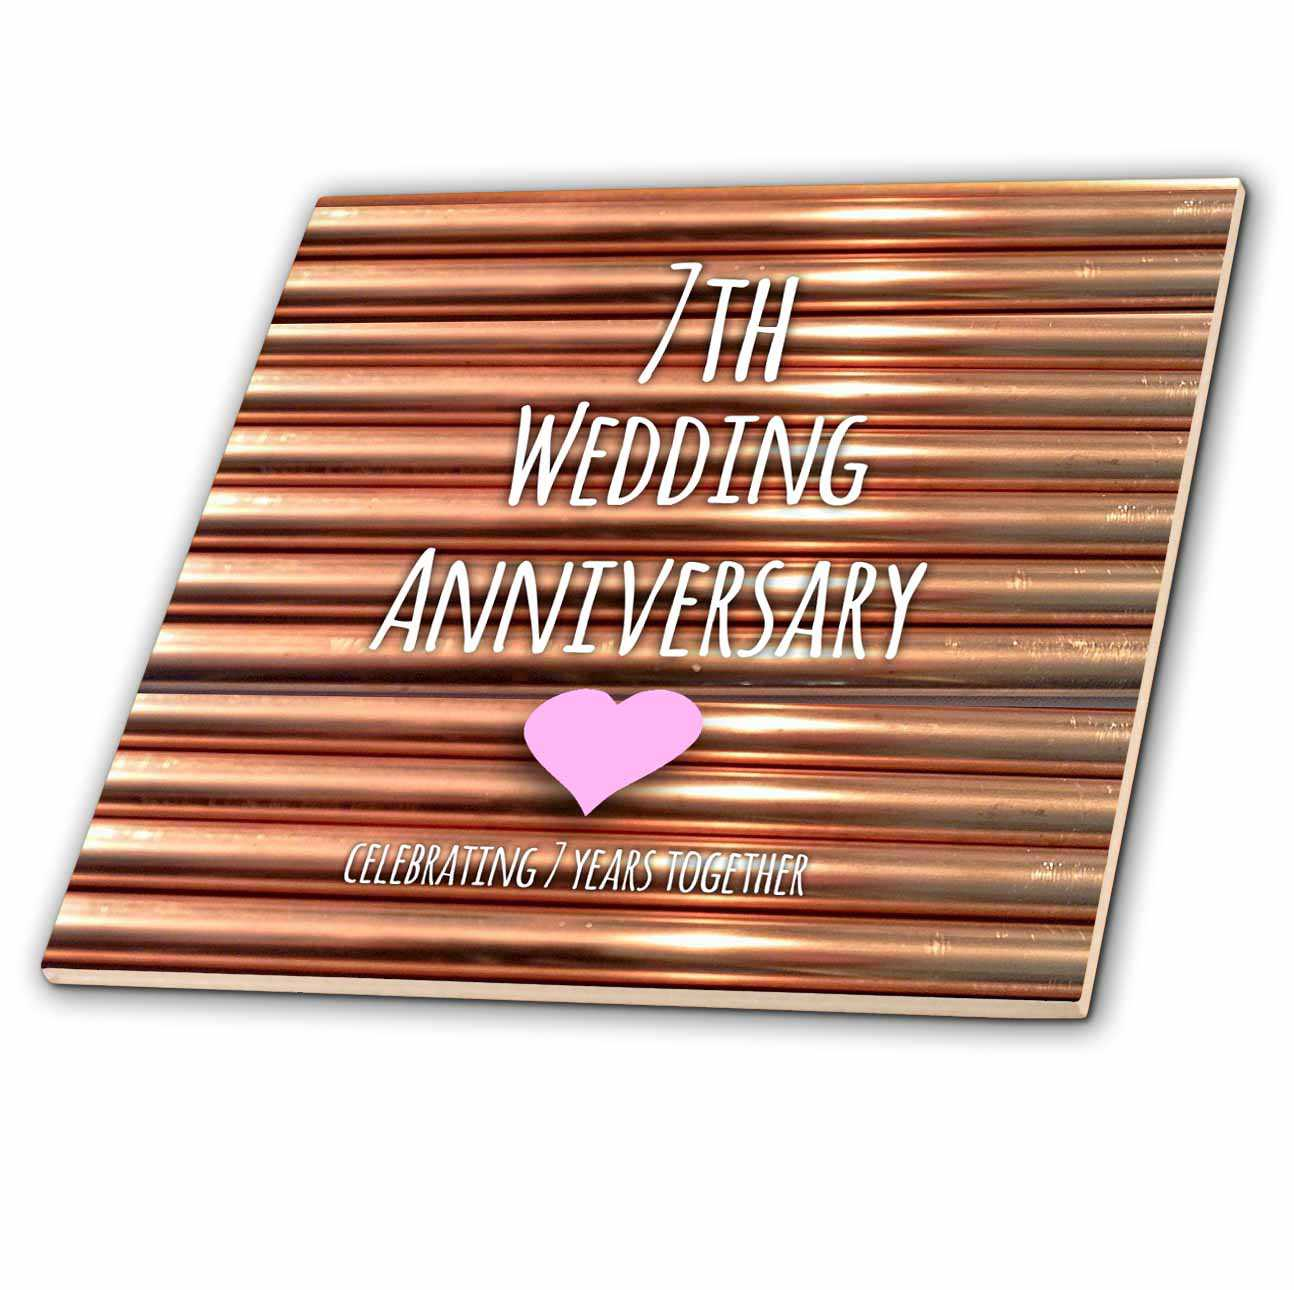 3dRose 7th Wedding Anniversary gift - Copper celebrating 7 years together - seventh anniversaries seven - Ceramic Tile, 6-inch